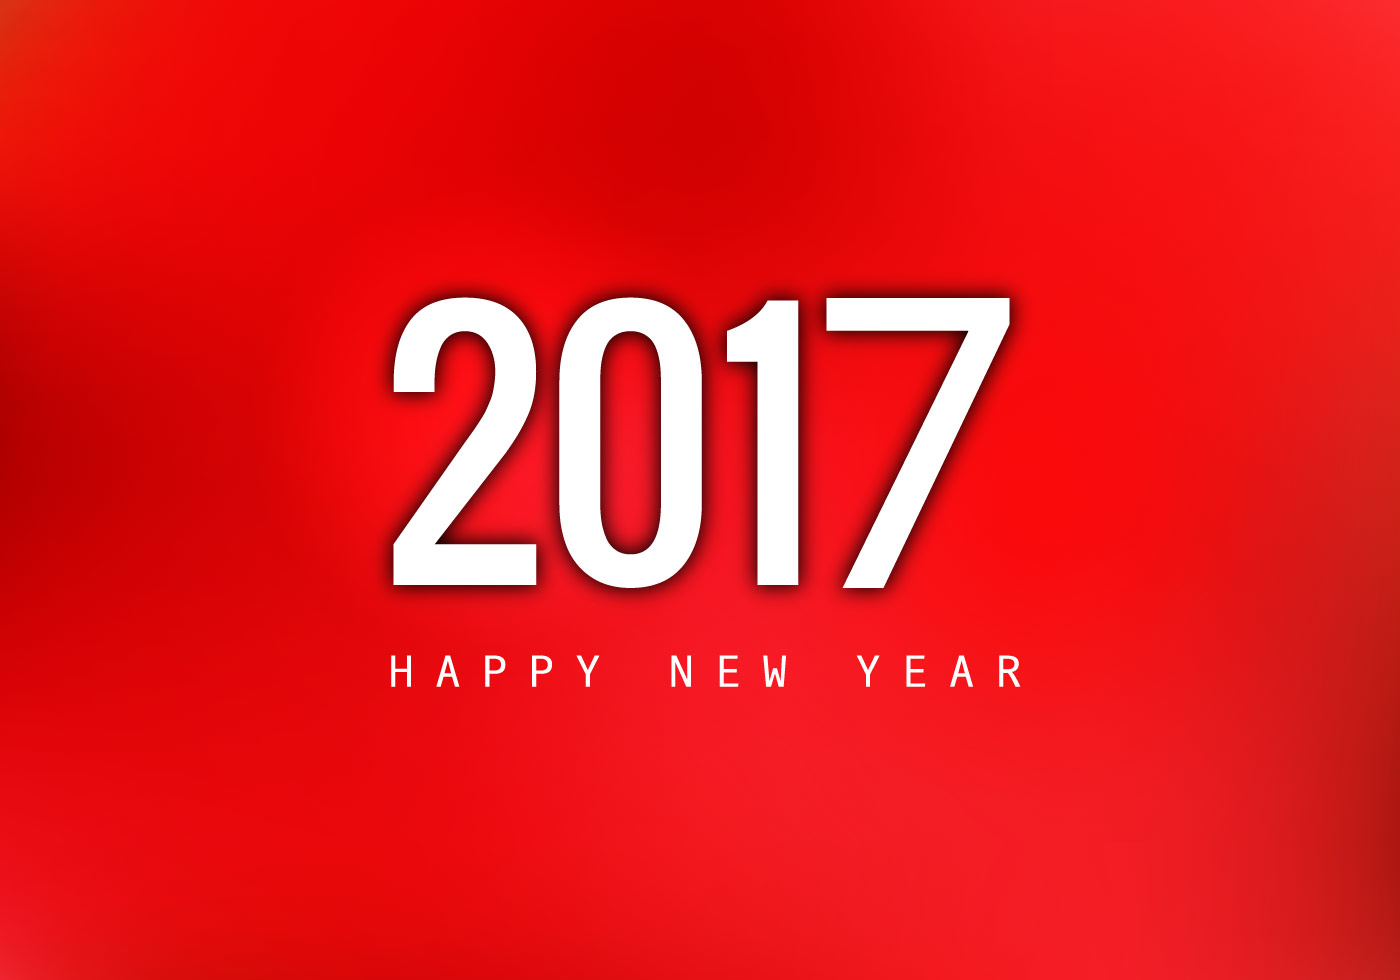 Happy New Year 2017 On Red Background - Download Free Vector Art ...